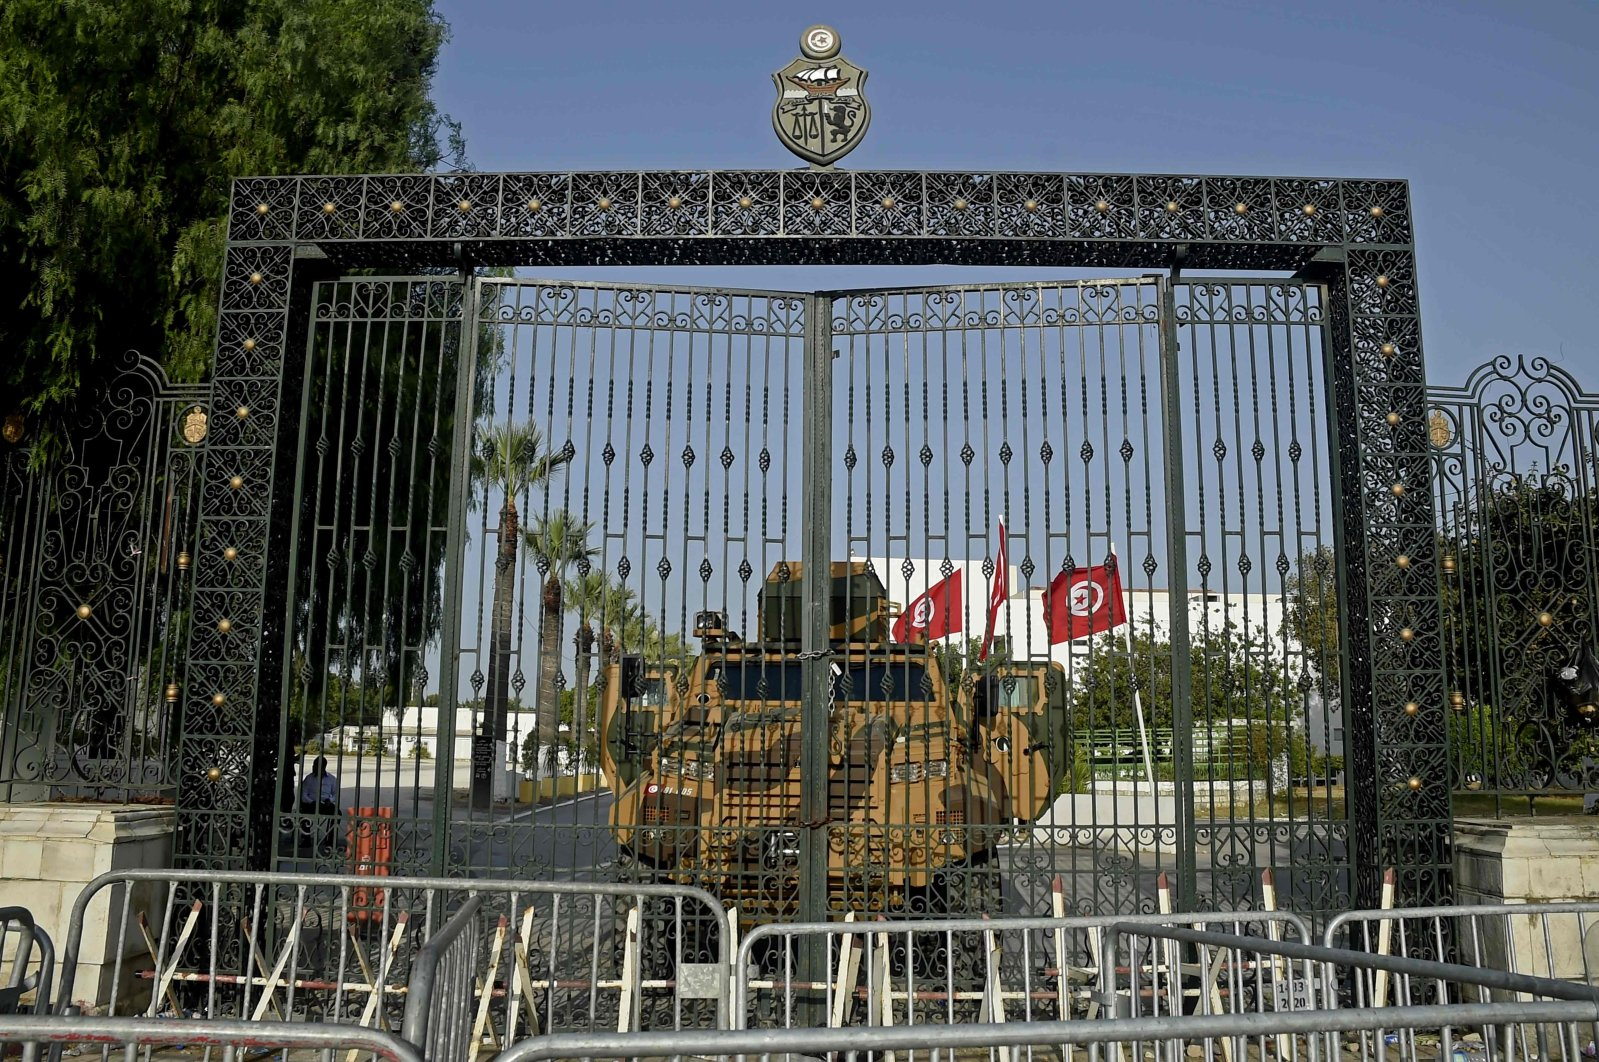 The Tunisian army barricades the parliament building in the capital after the president dismissed the prime minister and ordered parliament closed for 30 days, Tunis, Tunisia, July 26, 2021. (AFP Photo)